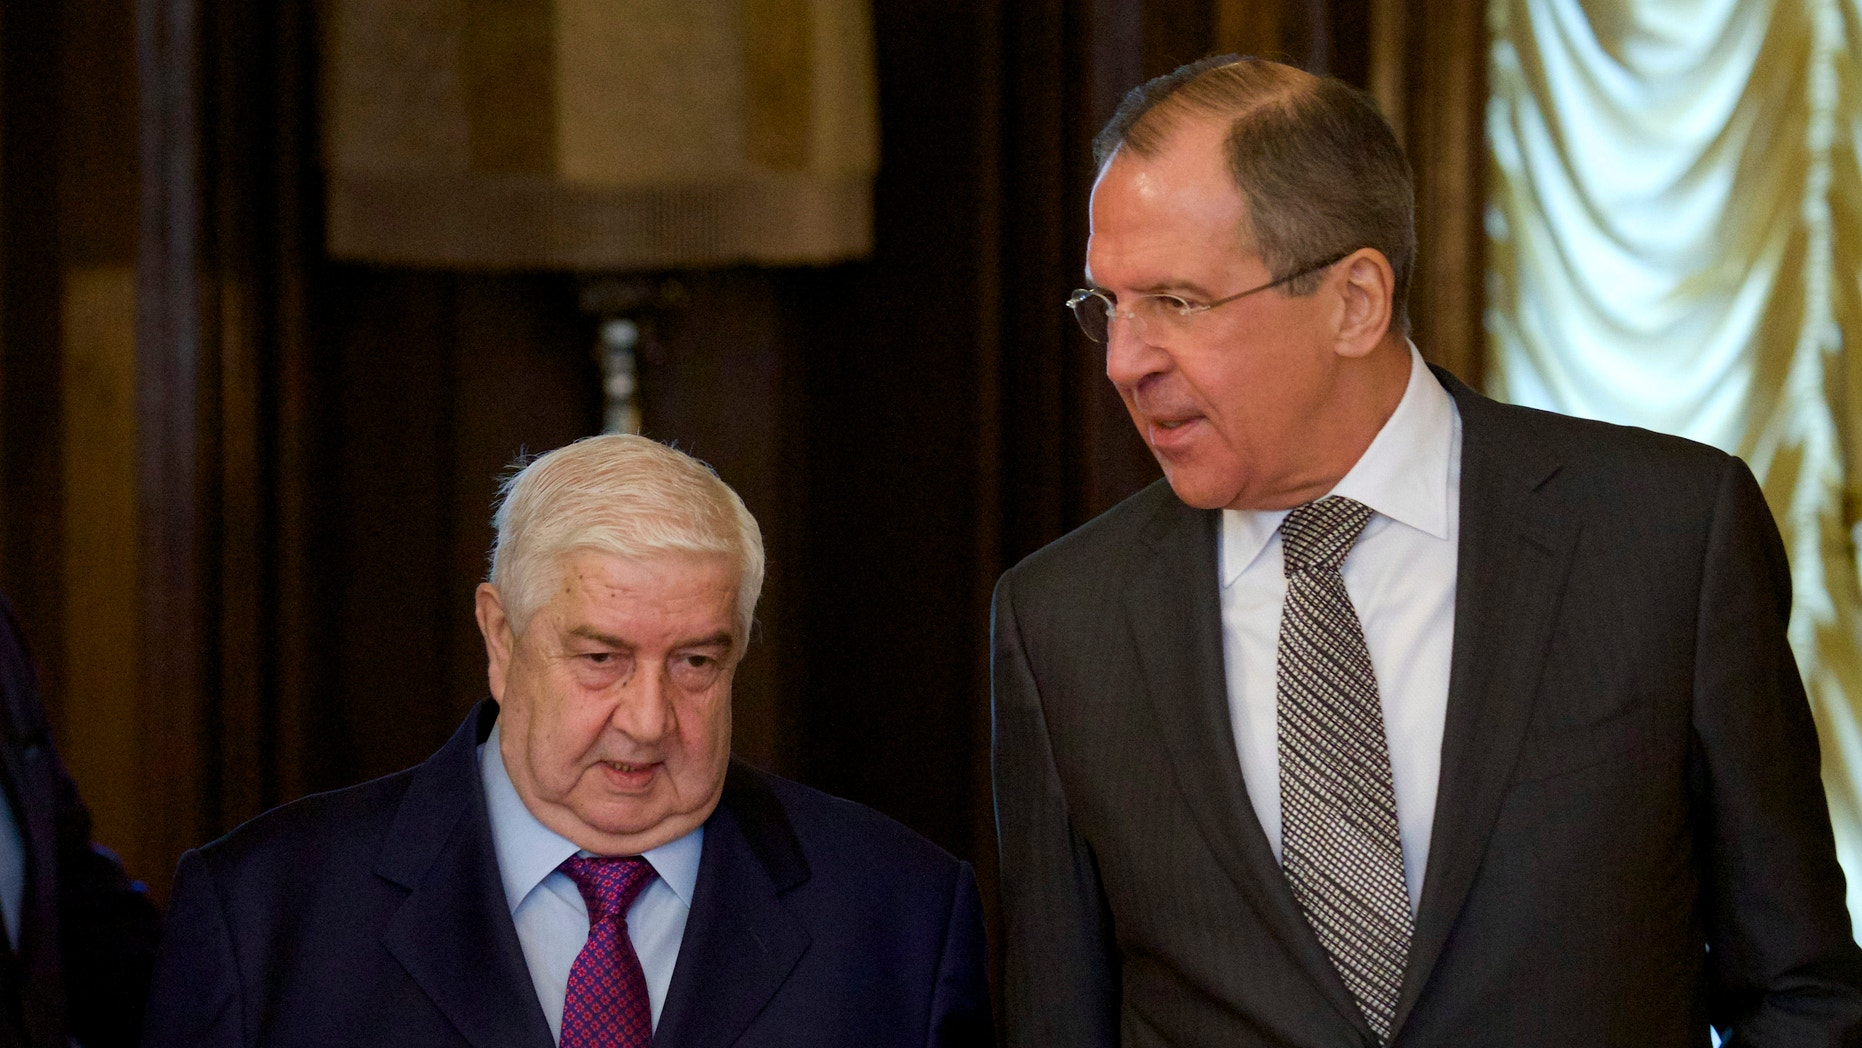 Feb. 25, 2013 - Russian Foreign Minister Sergey Lavrov, right, welcomes Syrian Foreign Minister Walid al-Moallem, left, in Moscow.